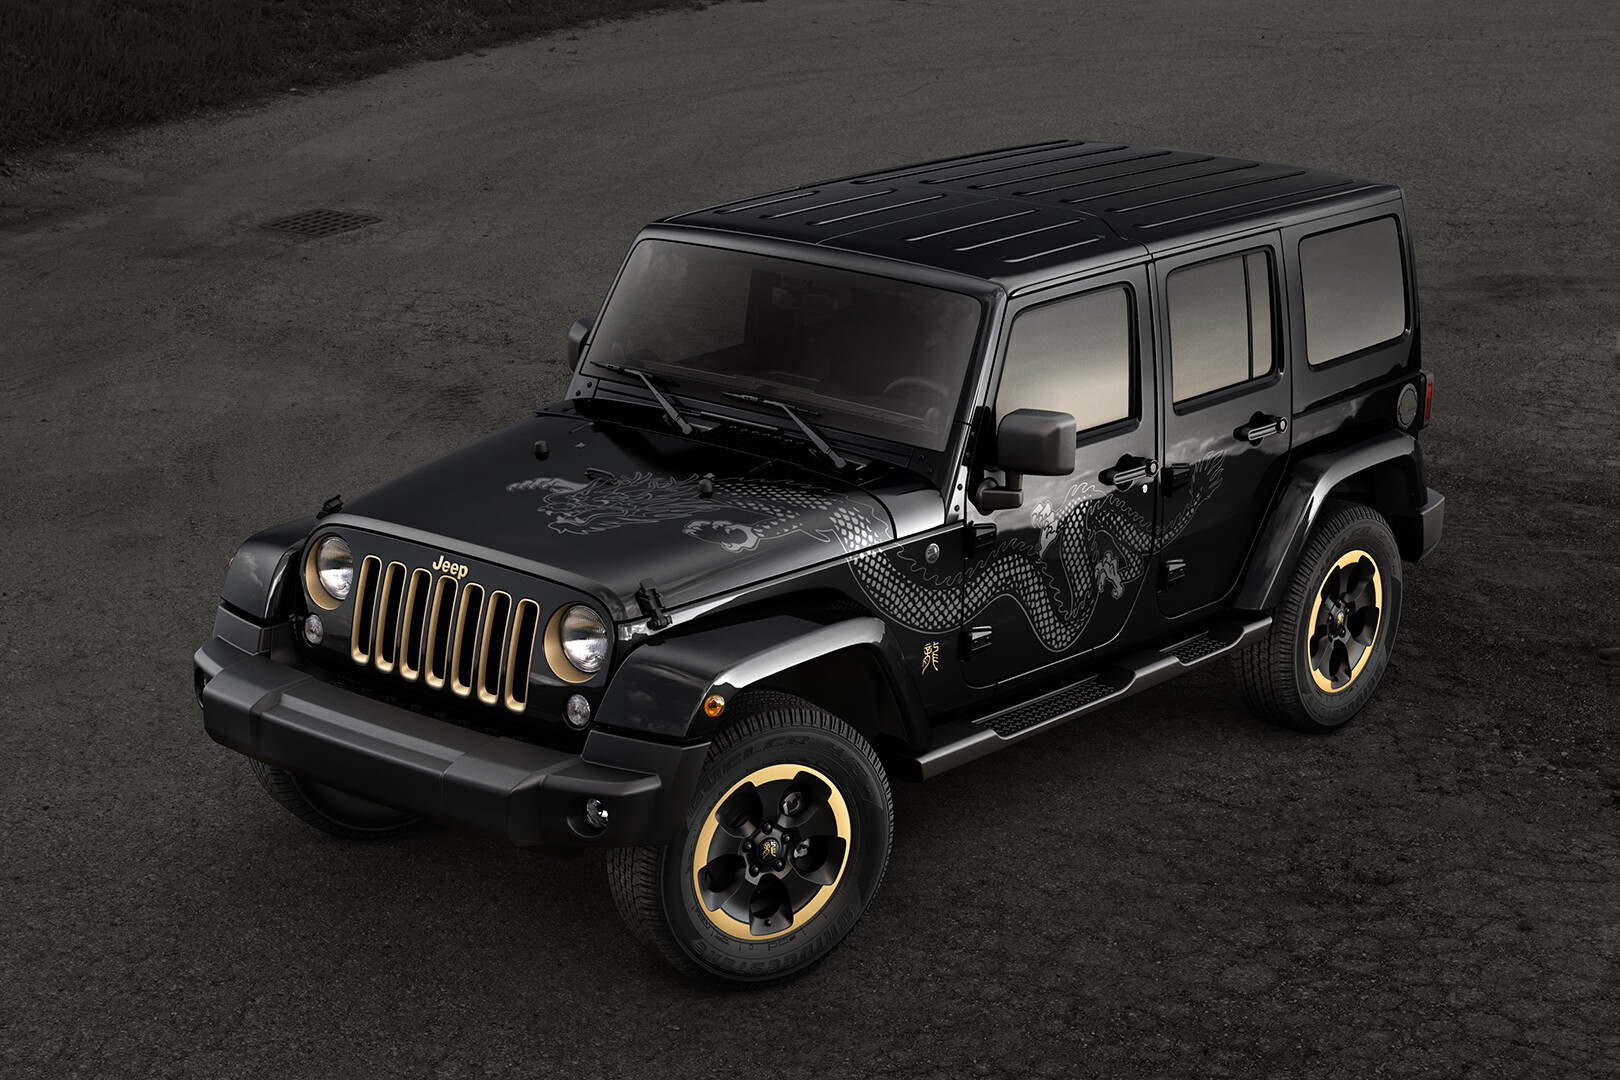 Jeep Wrangler: Fully CG Vehicle